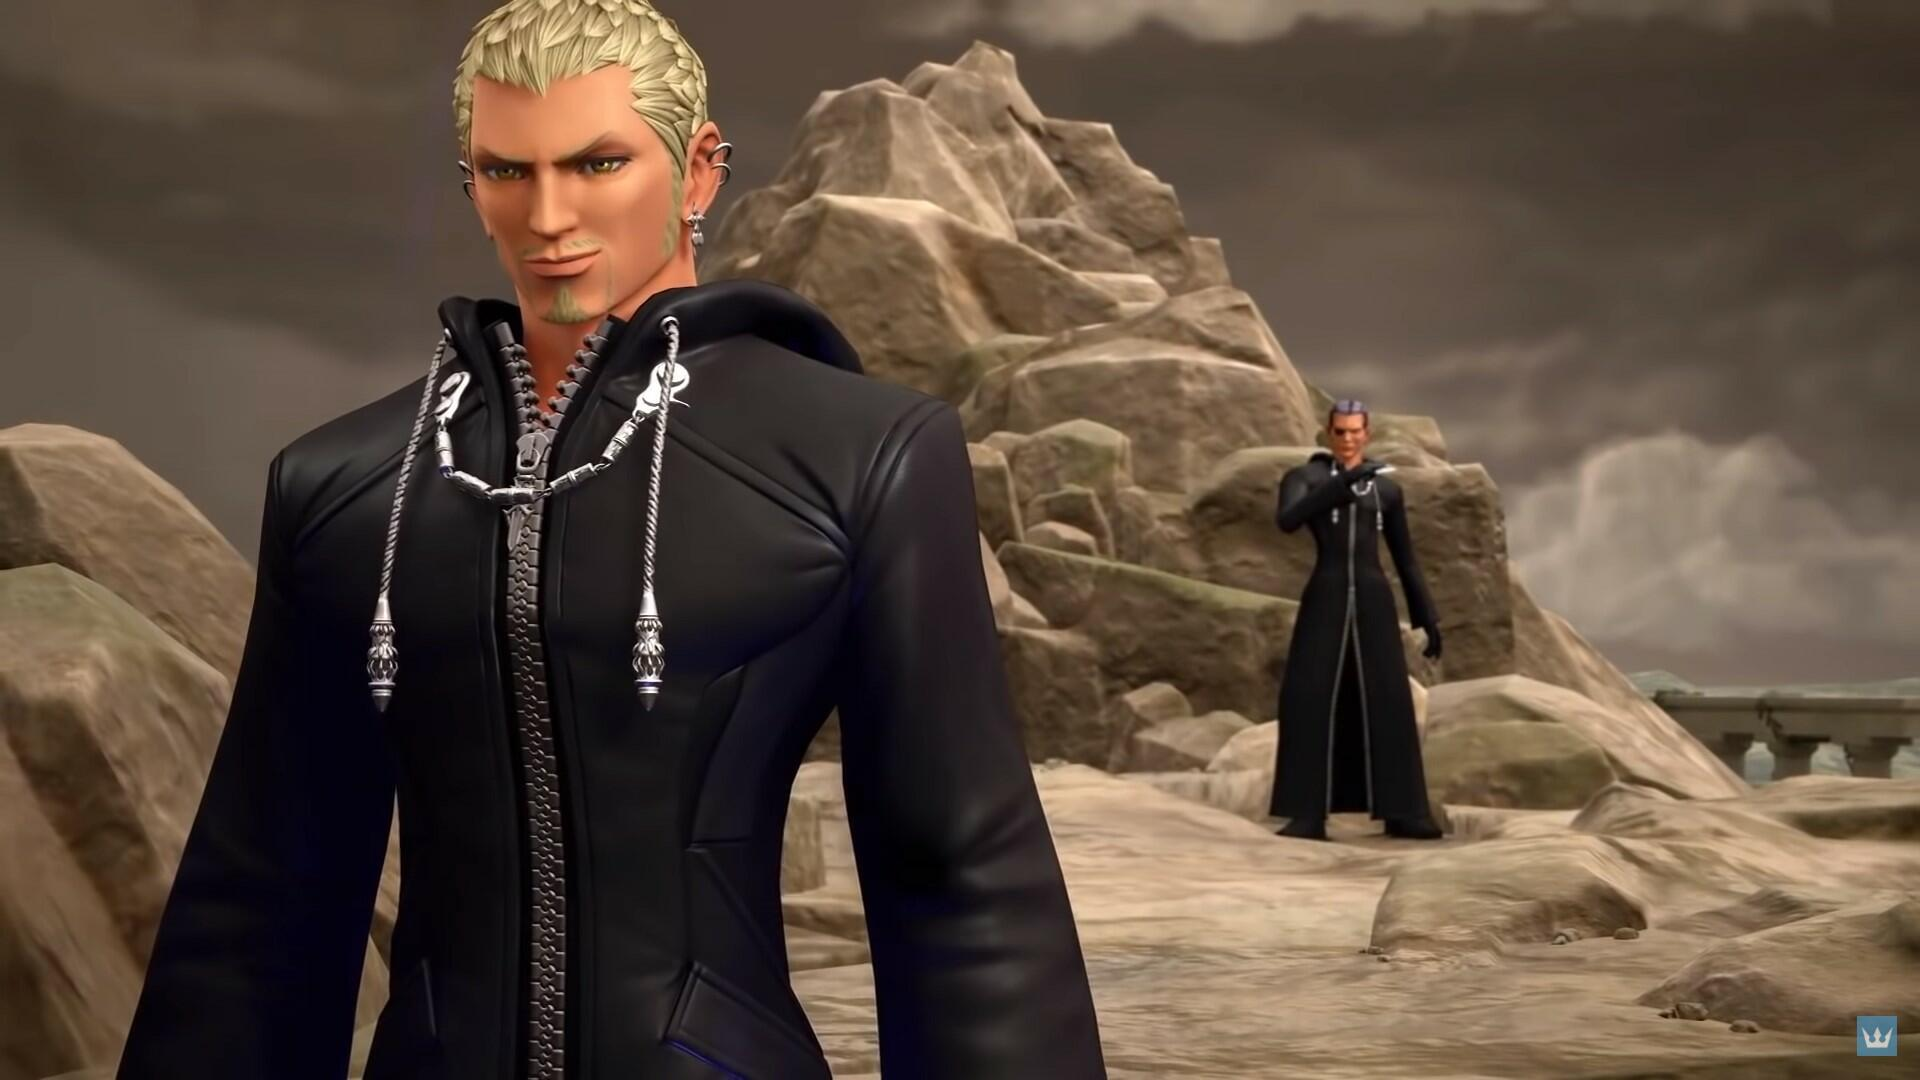 Kingdom Hearts 3 ReMind DLC: World List, World Order, Characters, Review Roundup